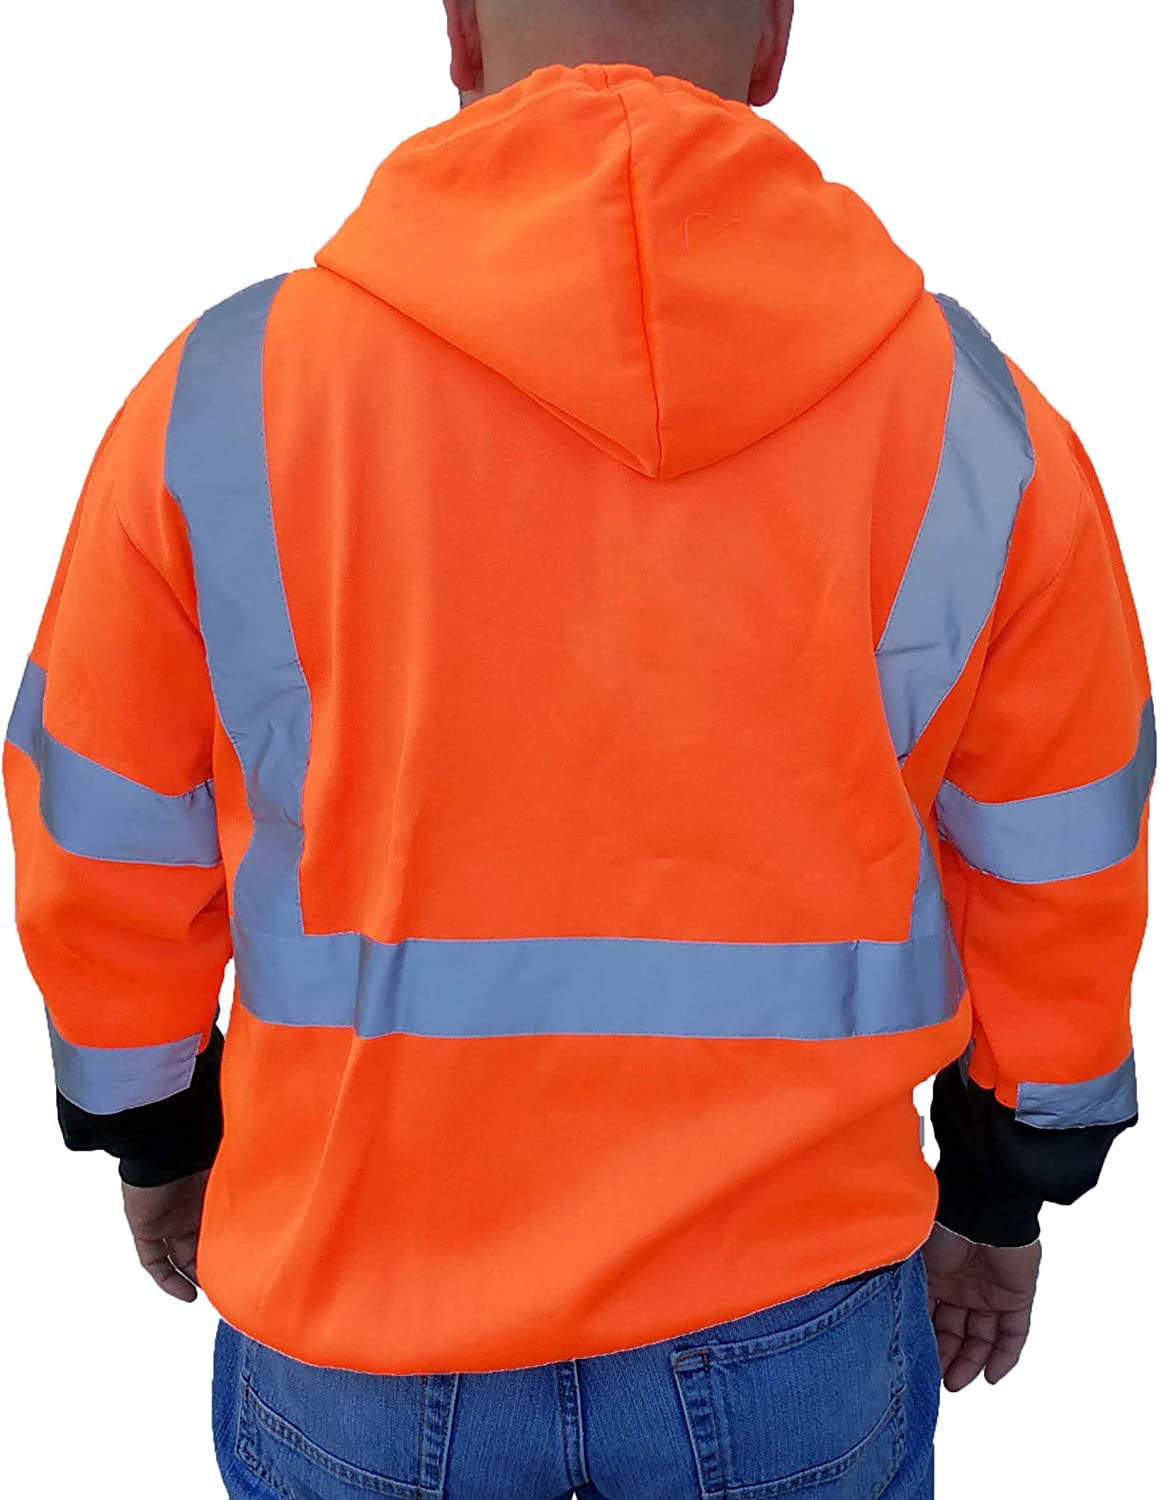 3C Products SAJ6800, ANSIISEA Class 3, Men's Safety Fleece Hoodie Jacket, Reflective, Pockets, Neon Orange wBlack Bottom